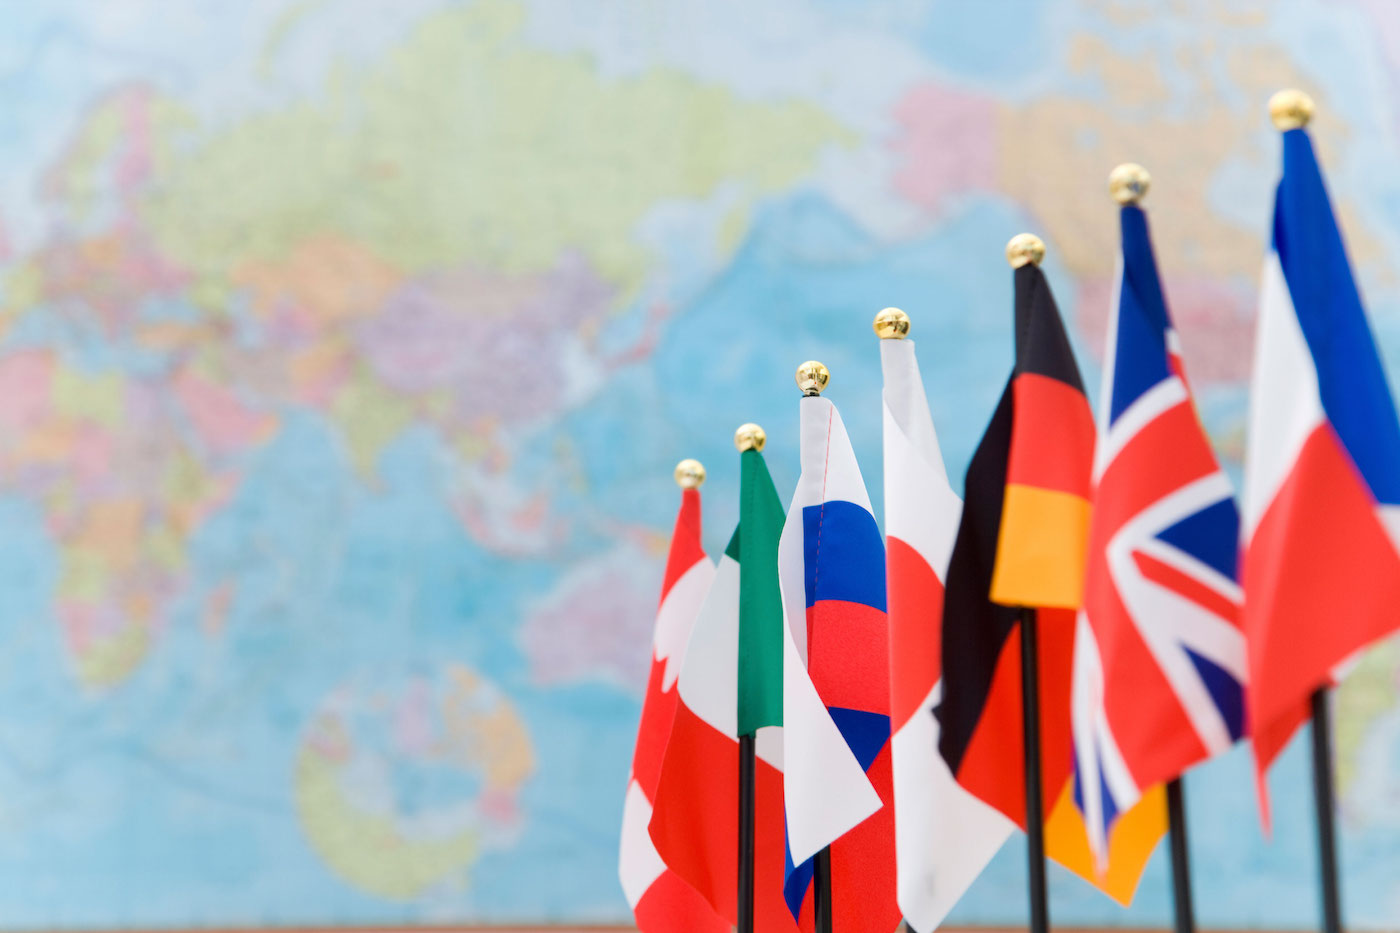 G7 event flags with map